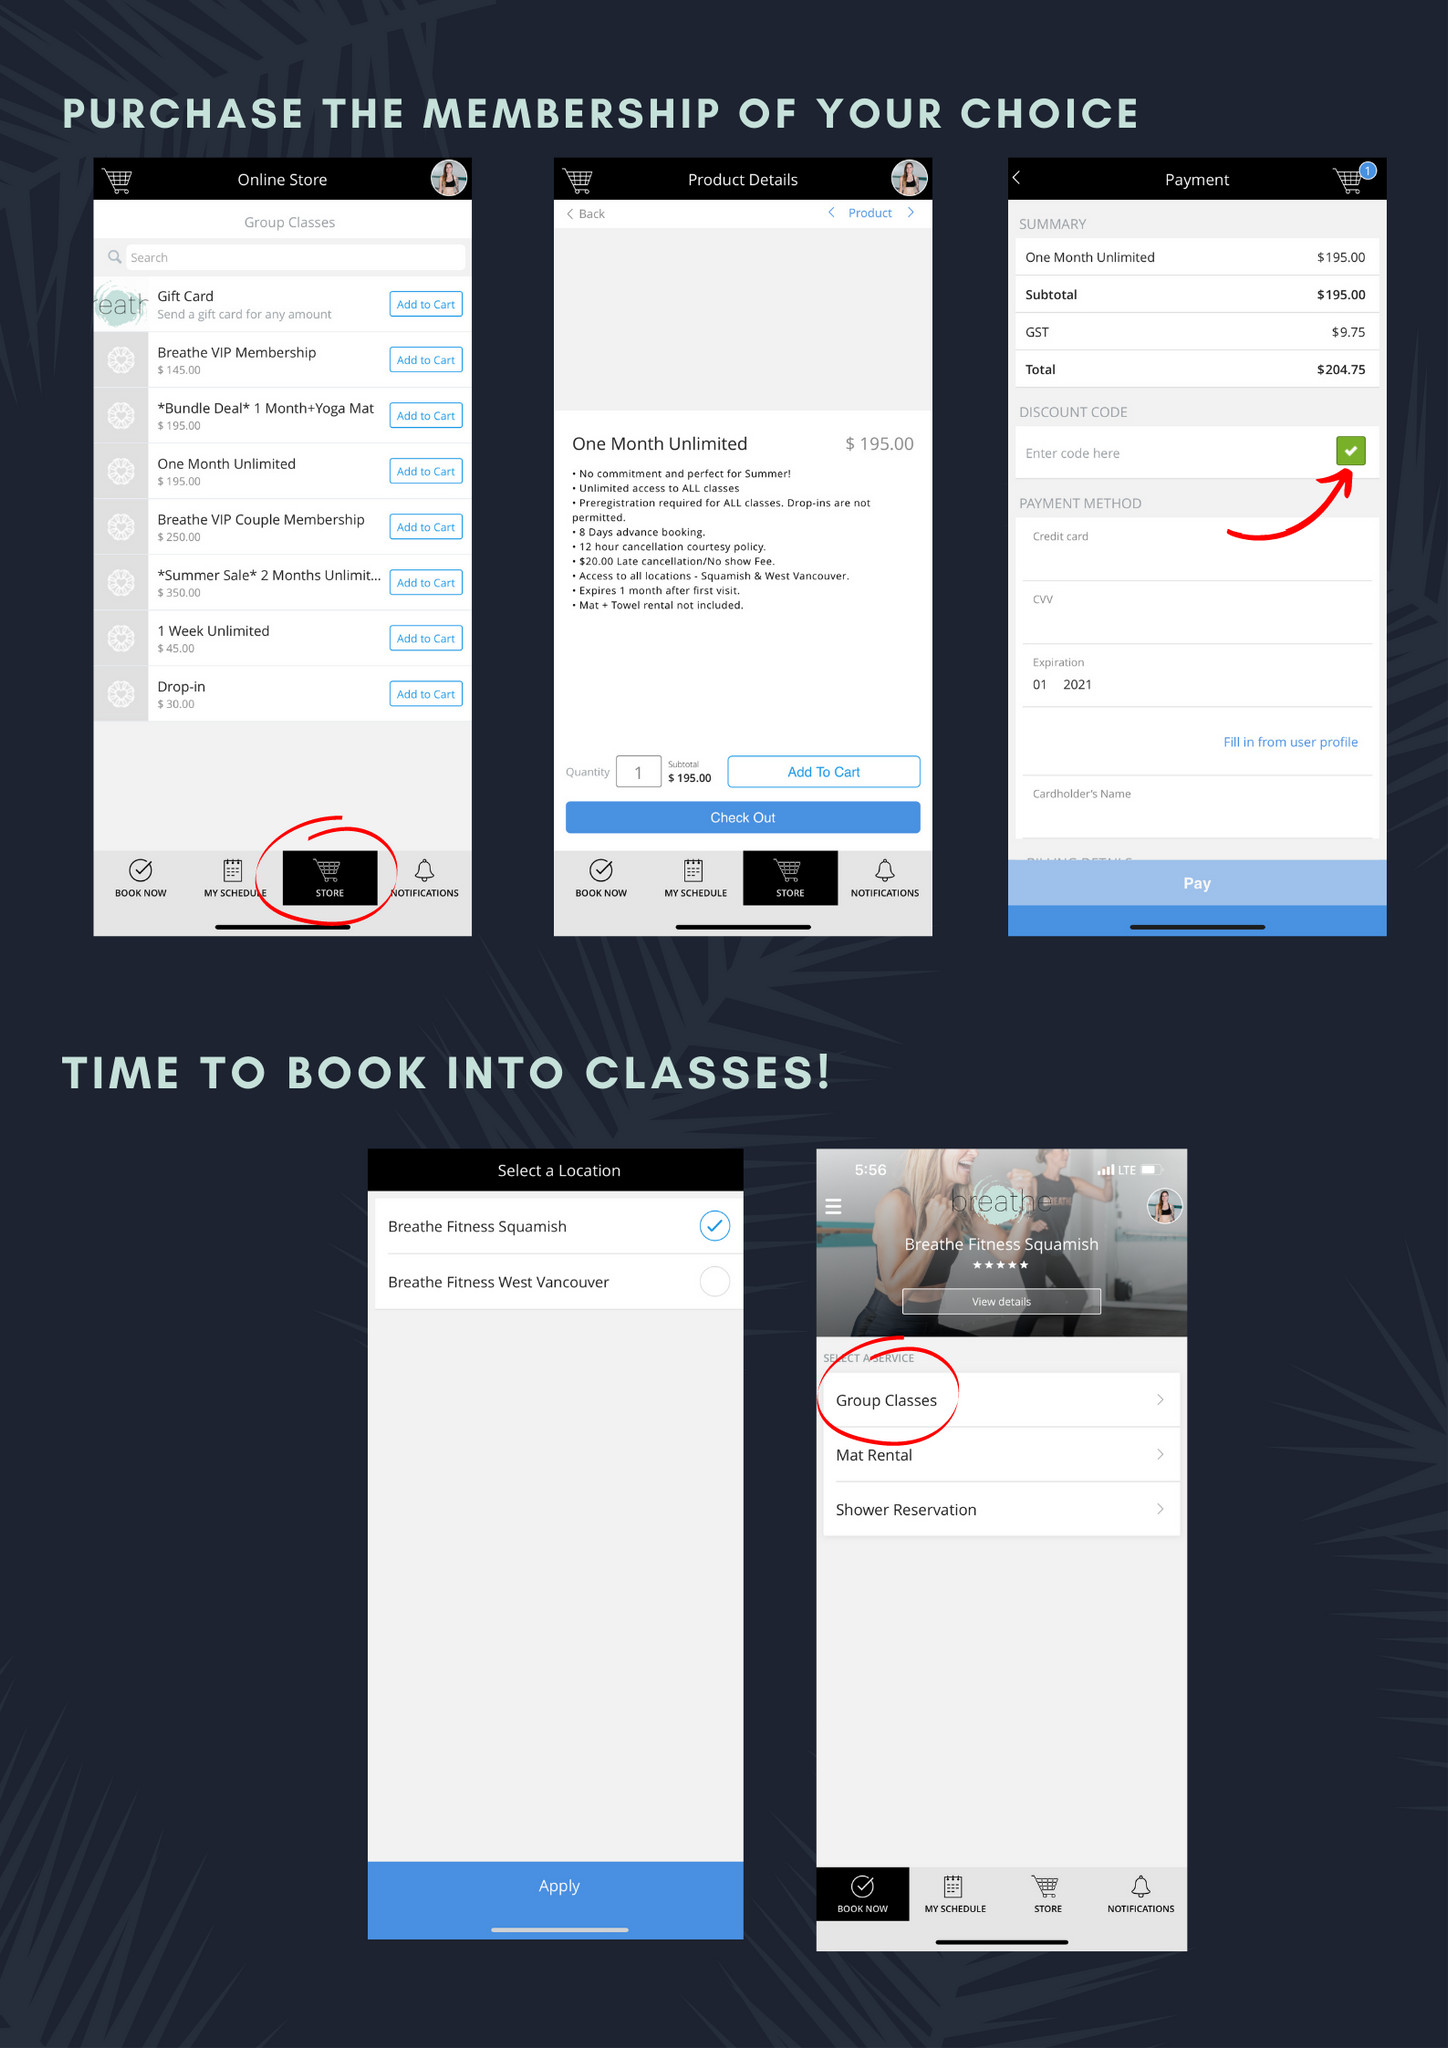 how to book into classes